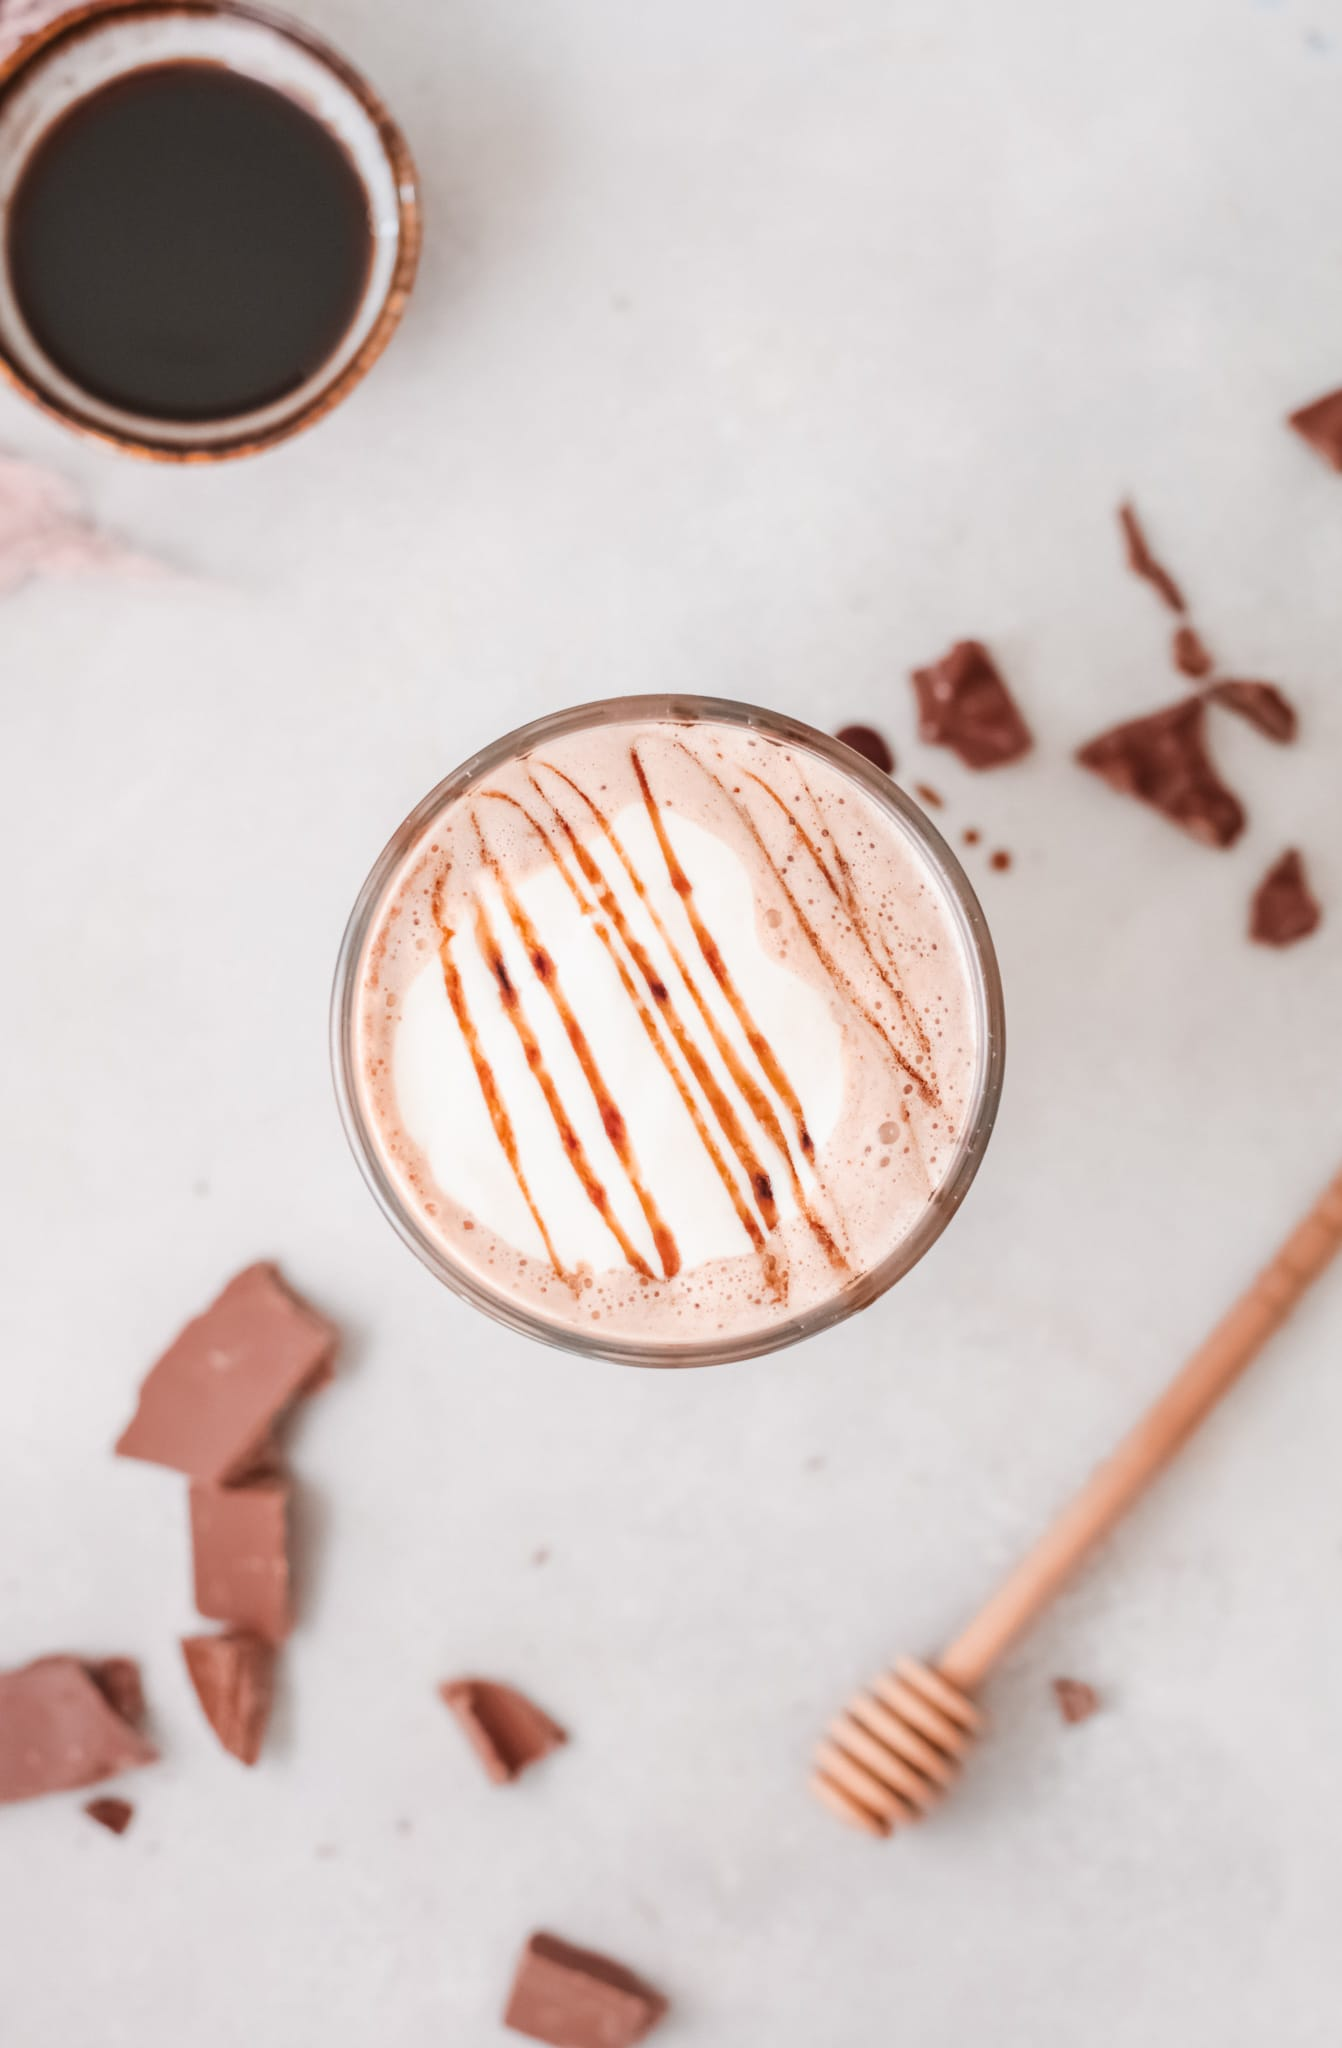 Pressure Cooker Salted Caramel Hot Chocolate. Silky smooth, creamy and decadent, this Instant Pot Salted Caramel Hot Chocolate is an instant family favorite. Made in either the Instant Pot or Slow Cooker this festive holiday drink is perfect for any occasion.